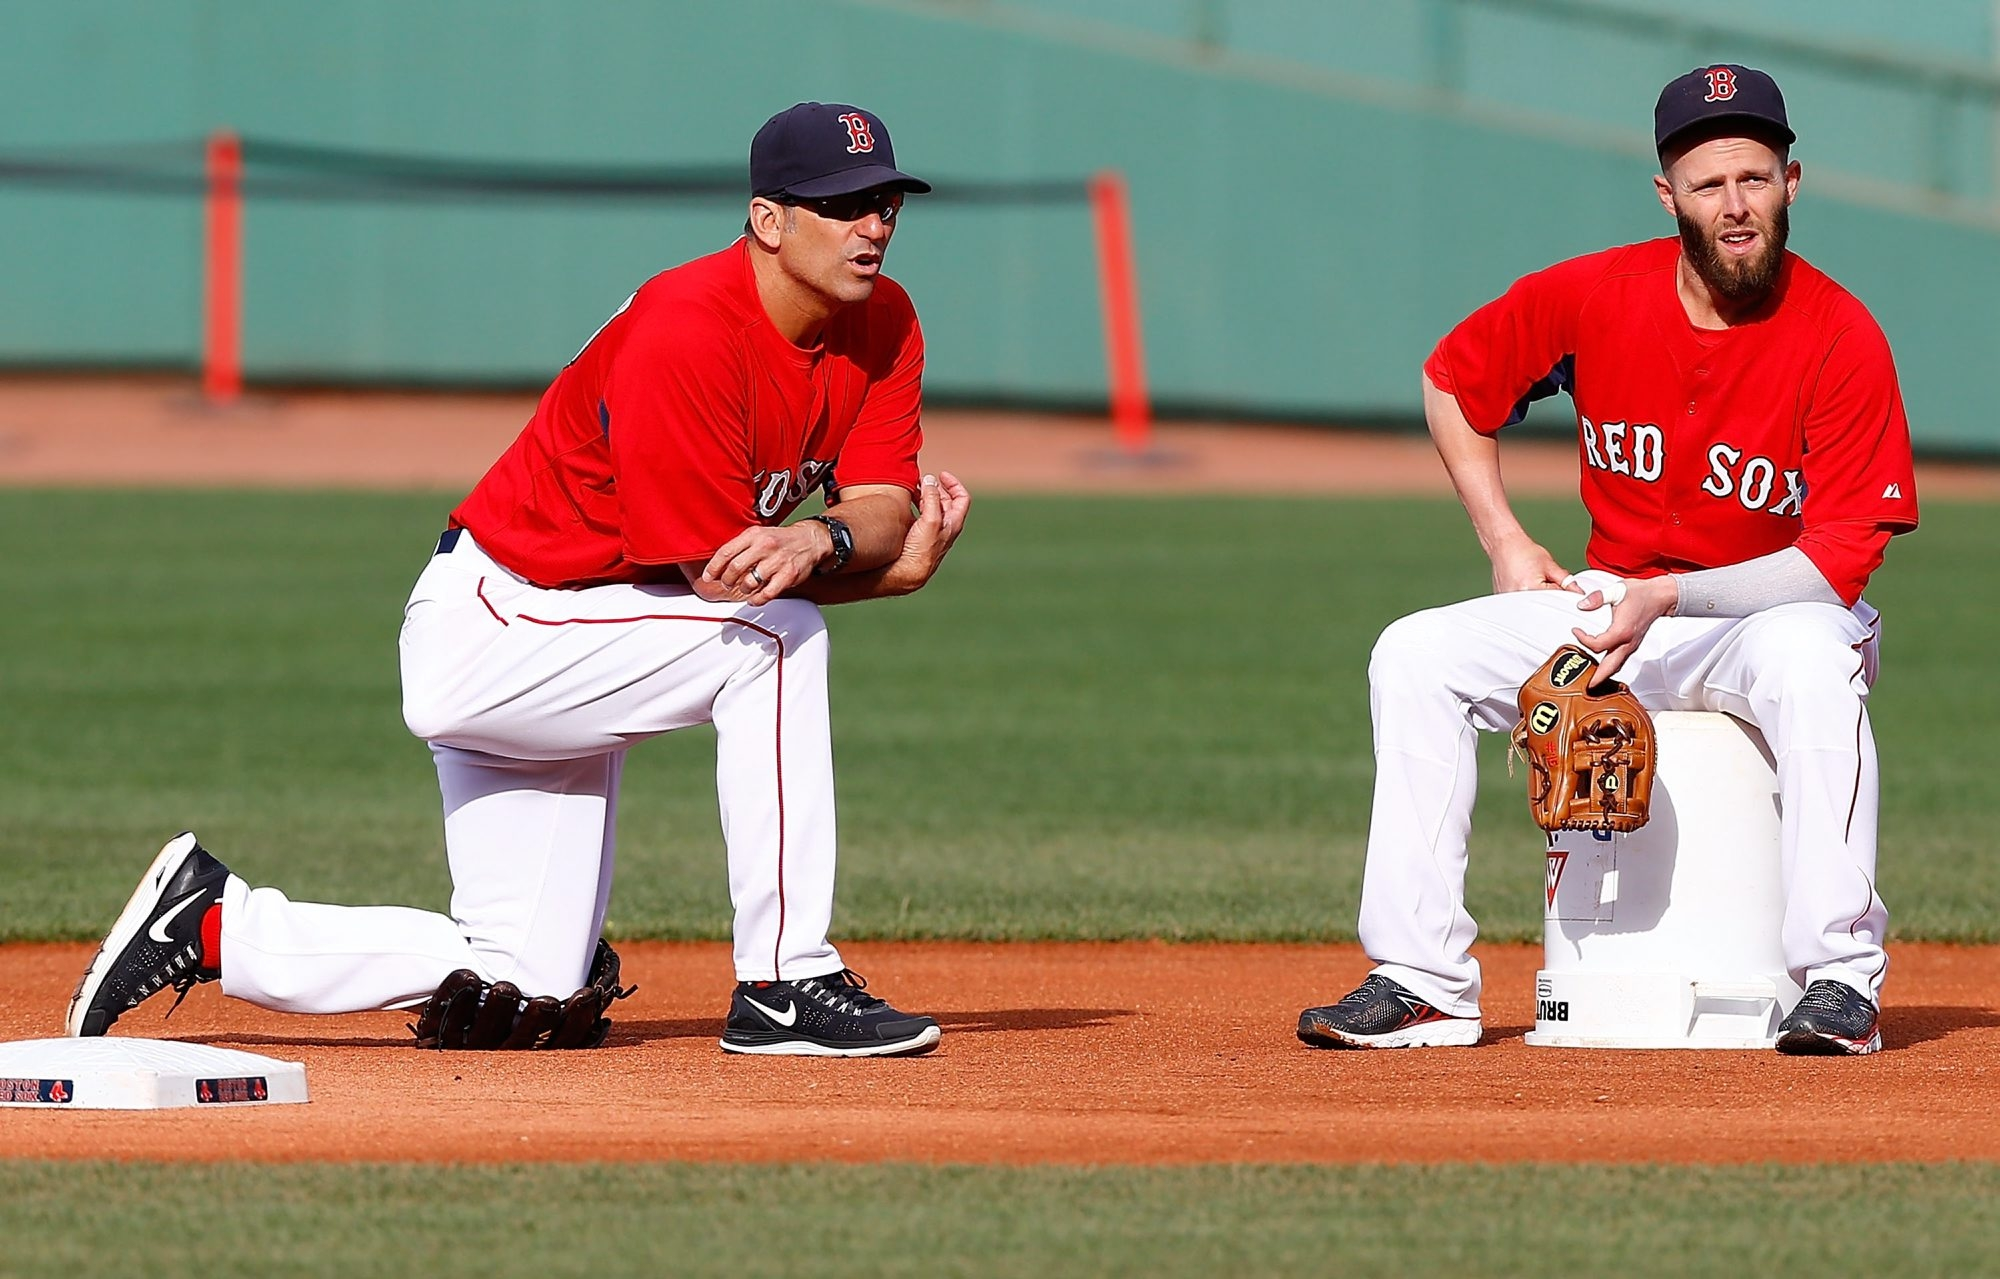 Torey Lovullo, left, chats with Red Sox second baseman Dustin Petroia. Lovullo's name has come up as a candidate for several managerial positions in other major league cities.